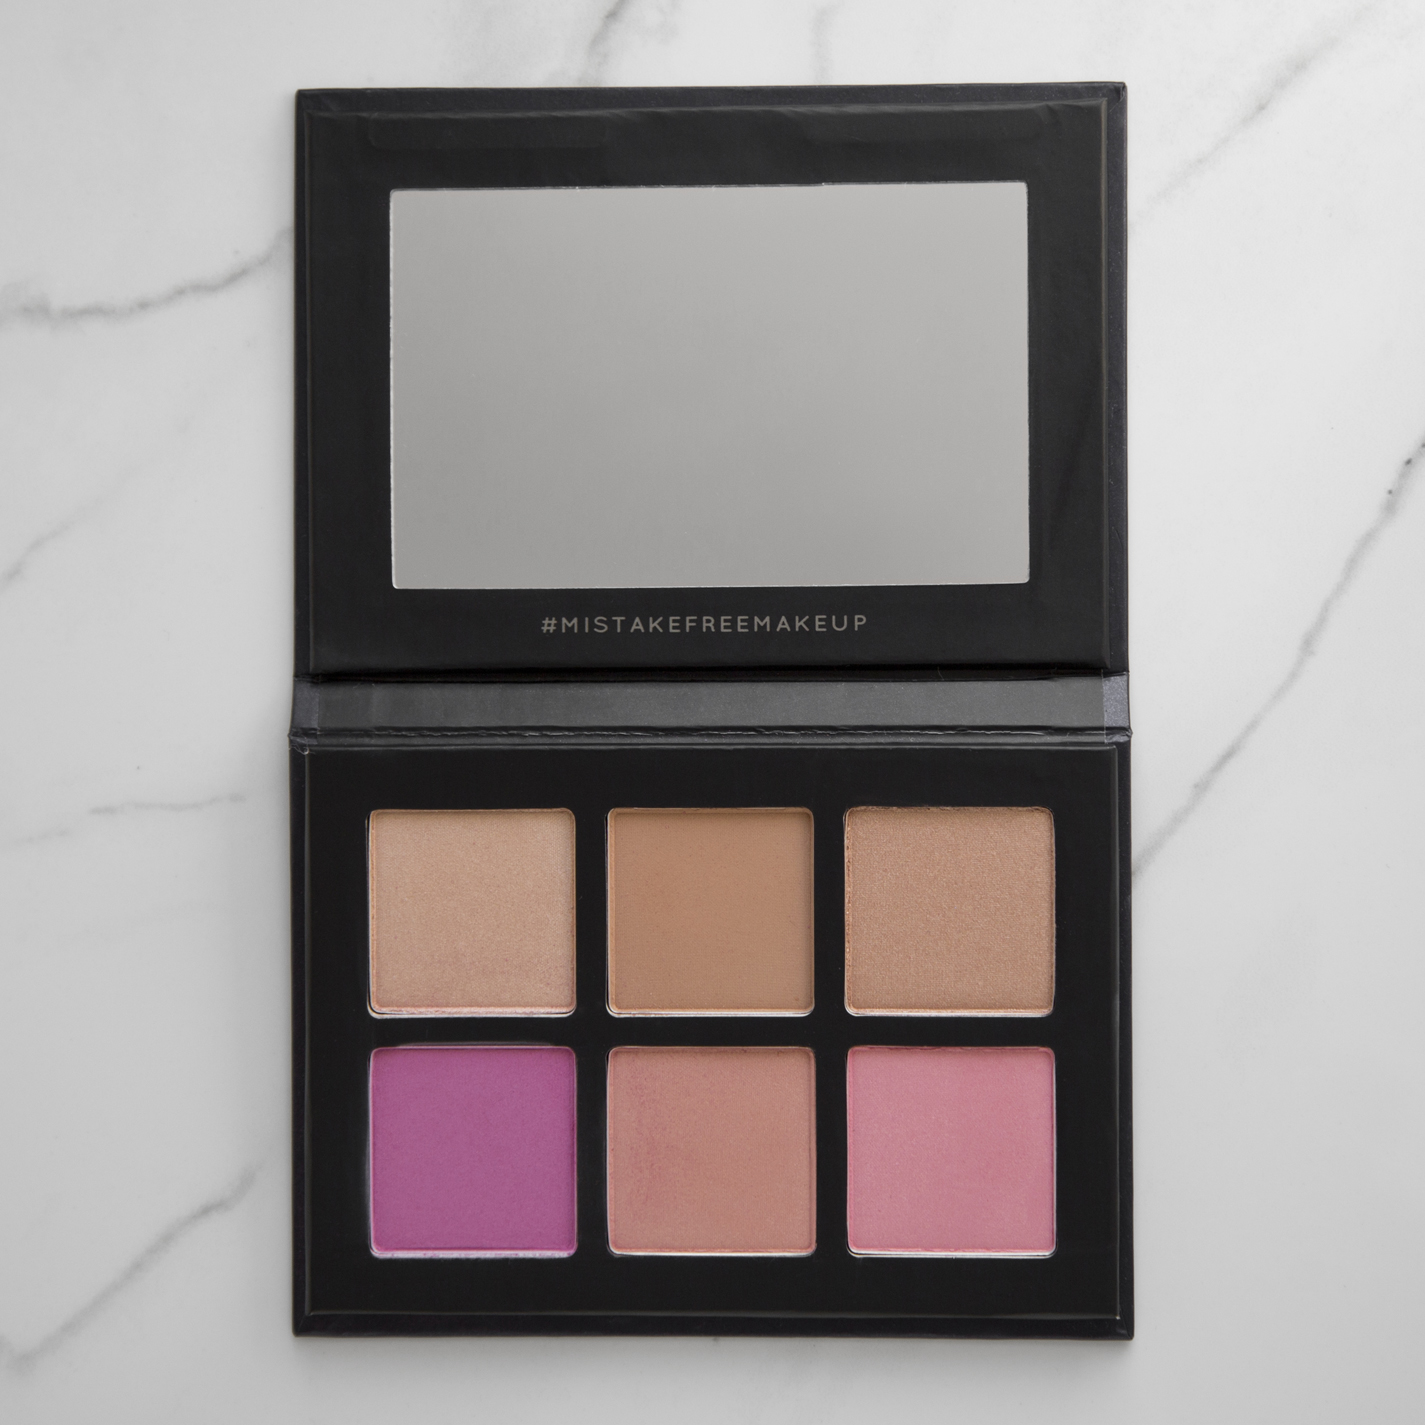 Fiona Stiles Cheek Palette.jpg